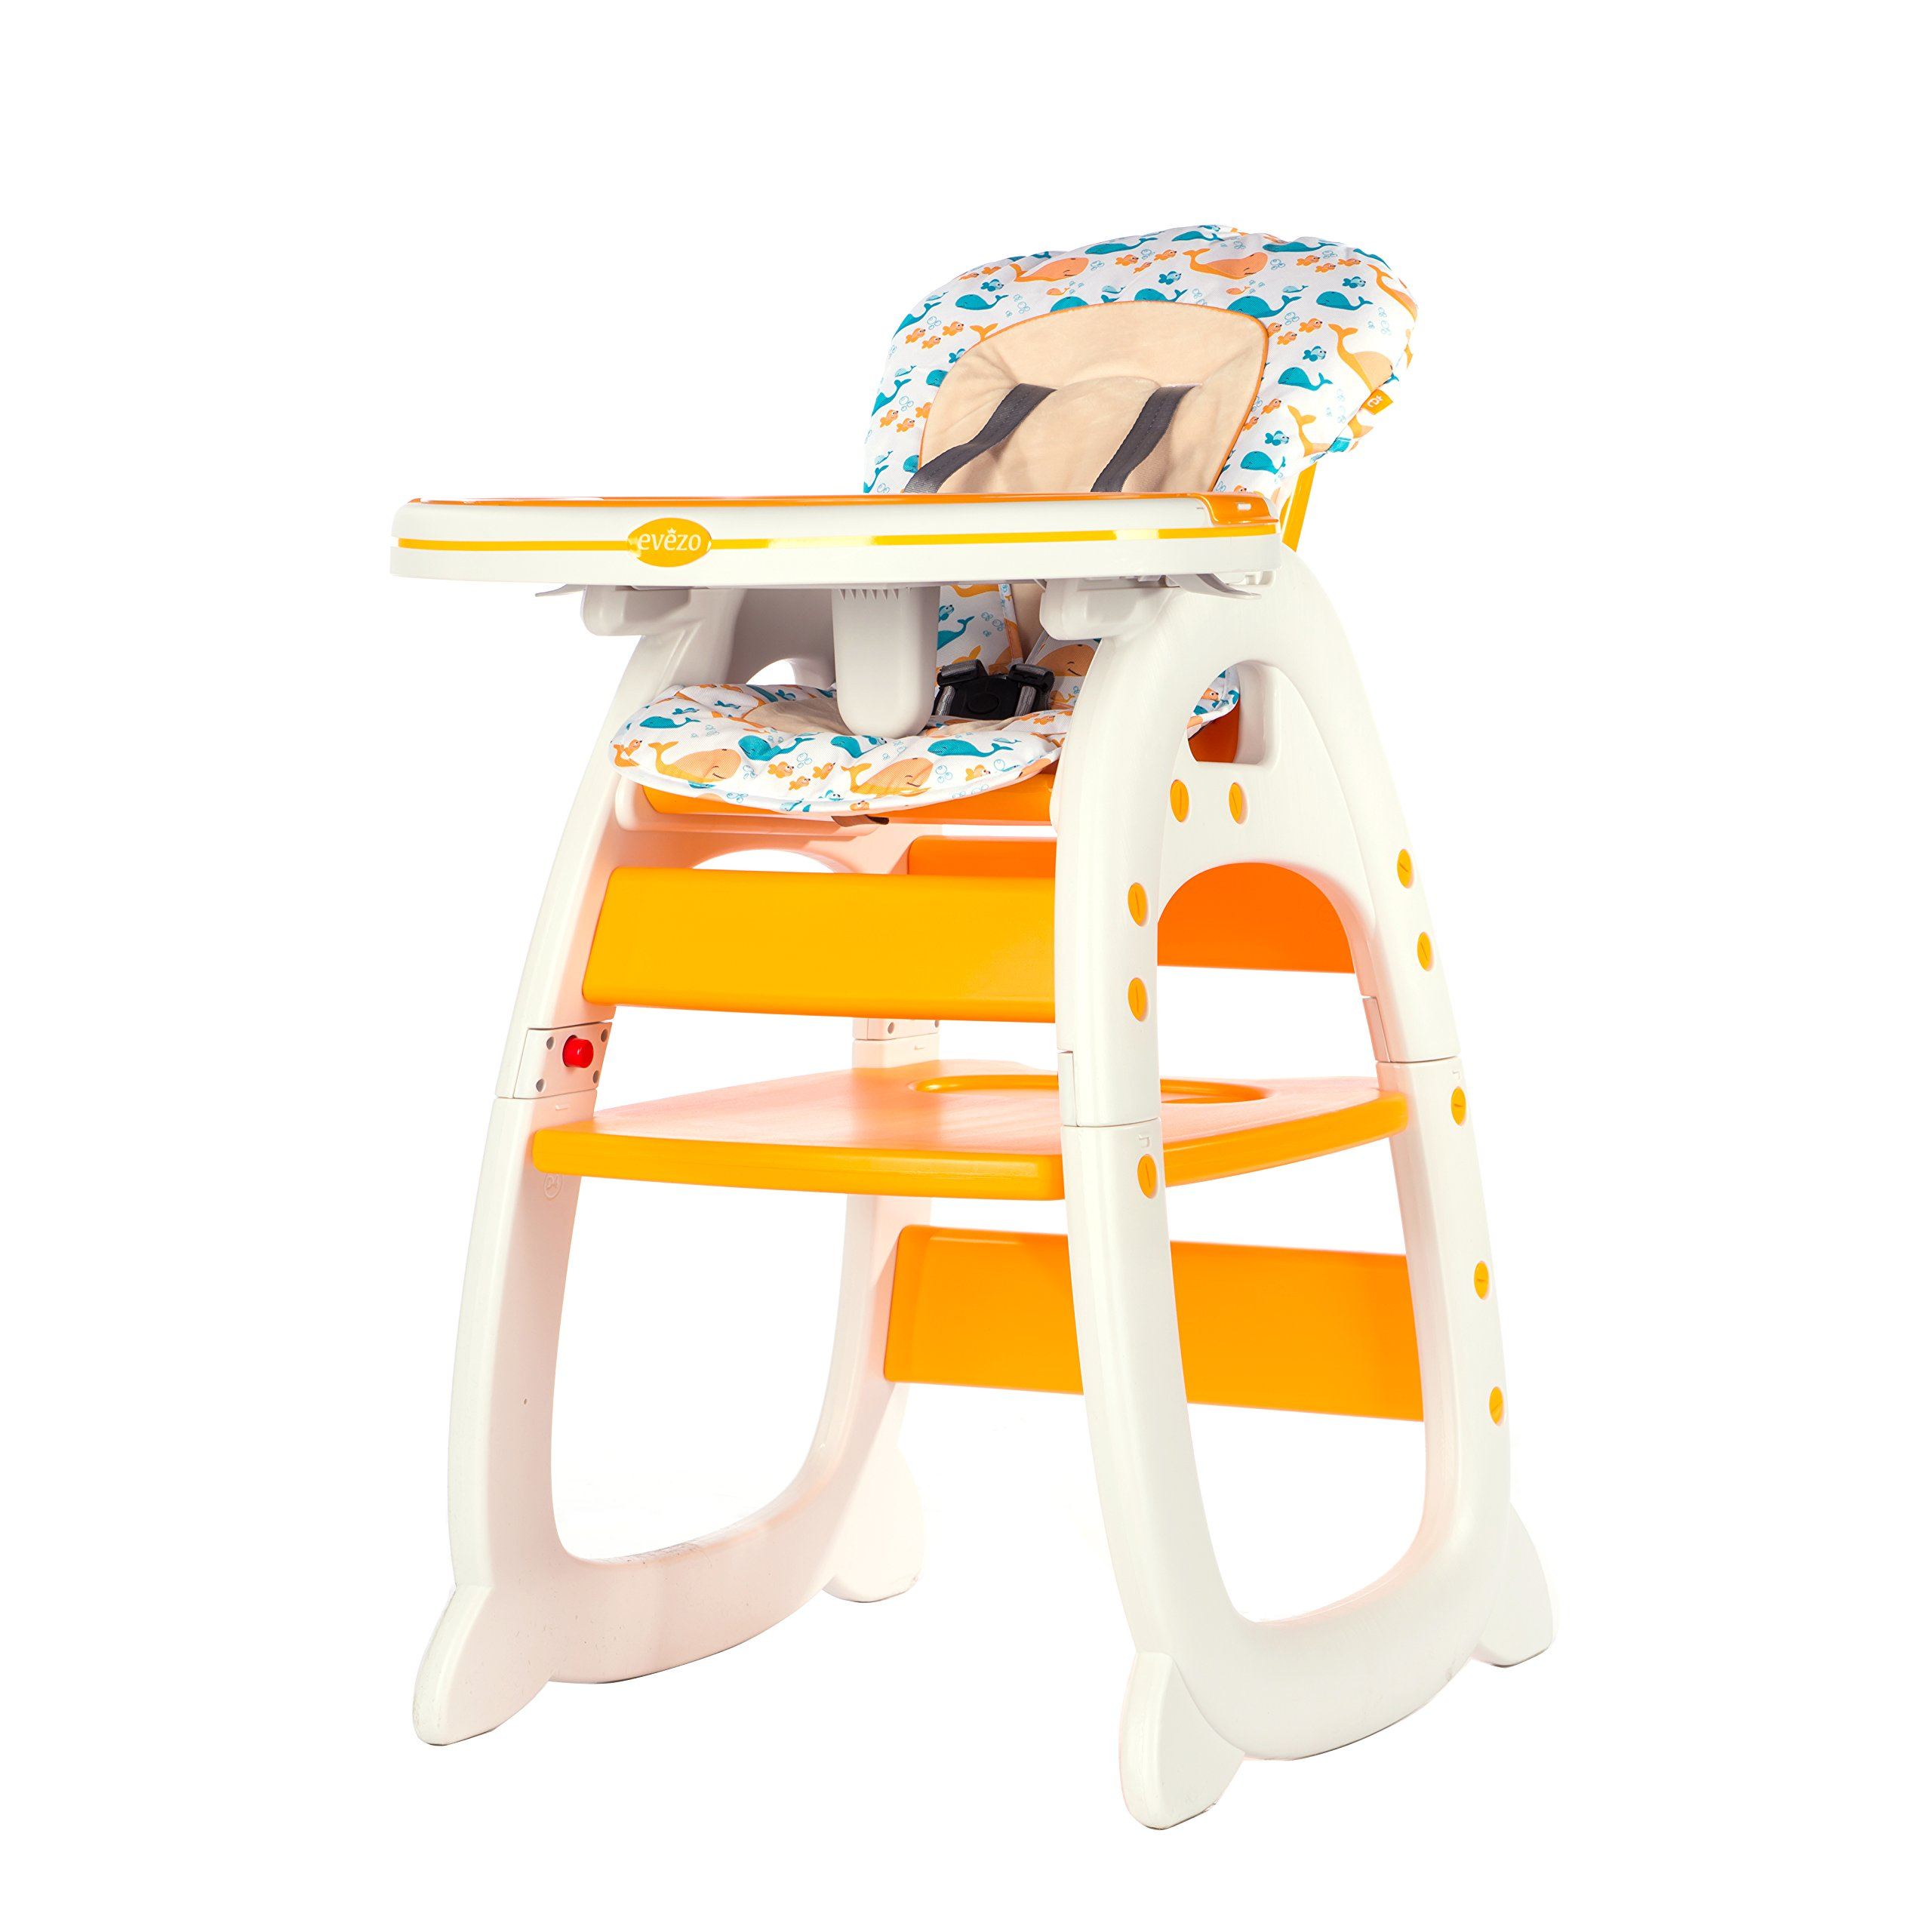 Evezo 6251A 3-in-1 Baby High Chair, Booster Seat, Desk and Chair Set, Dandelion